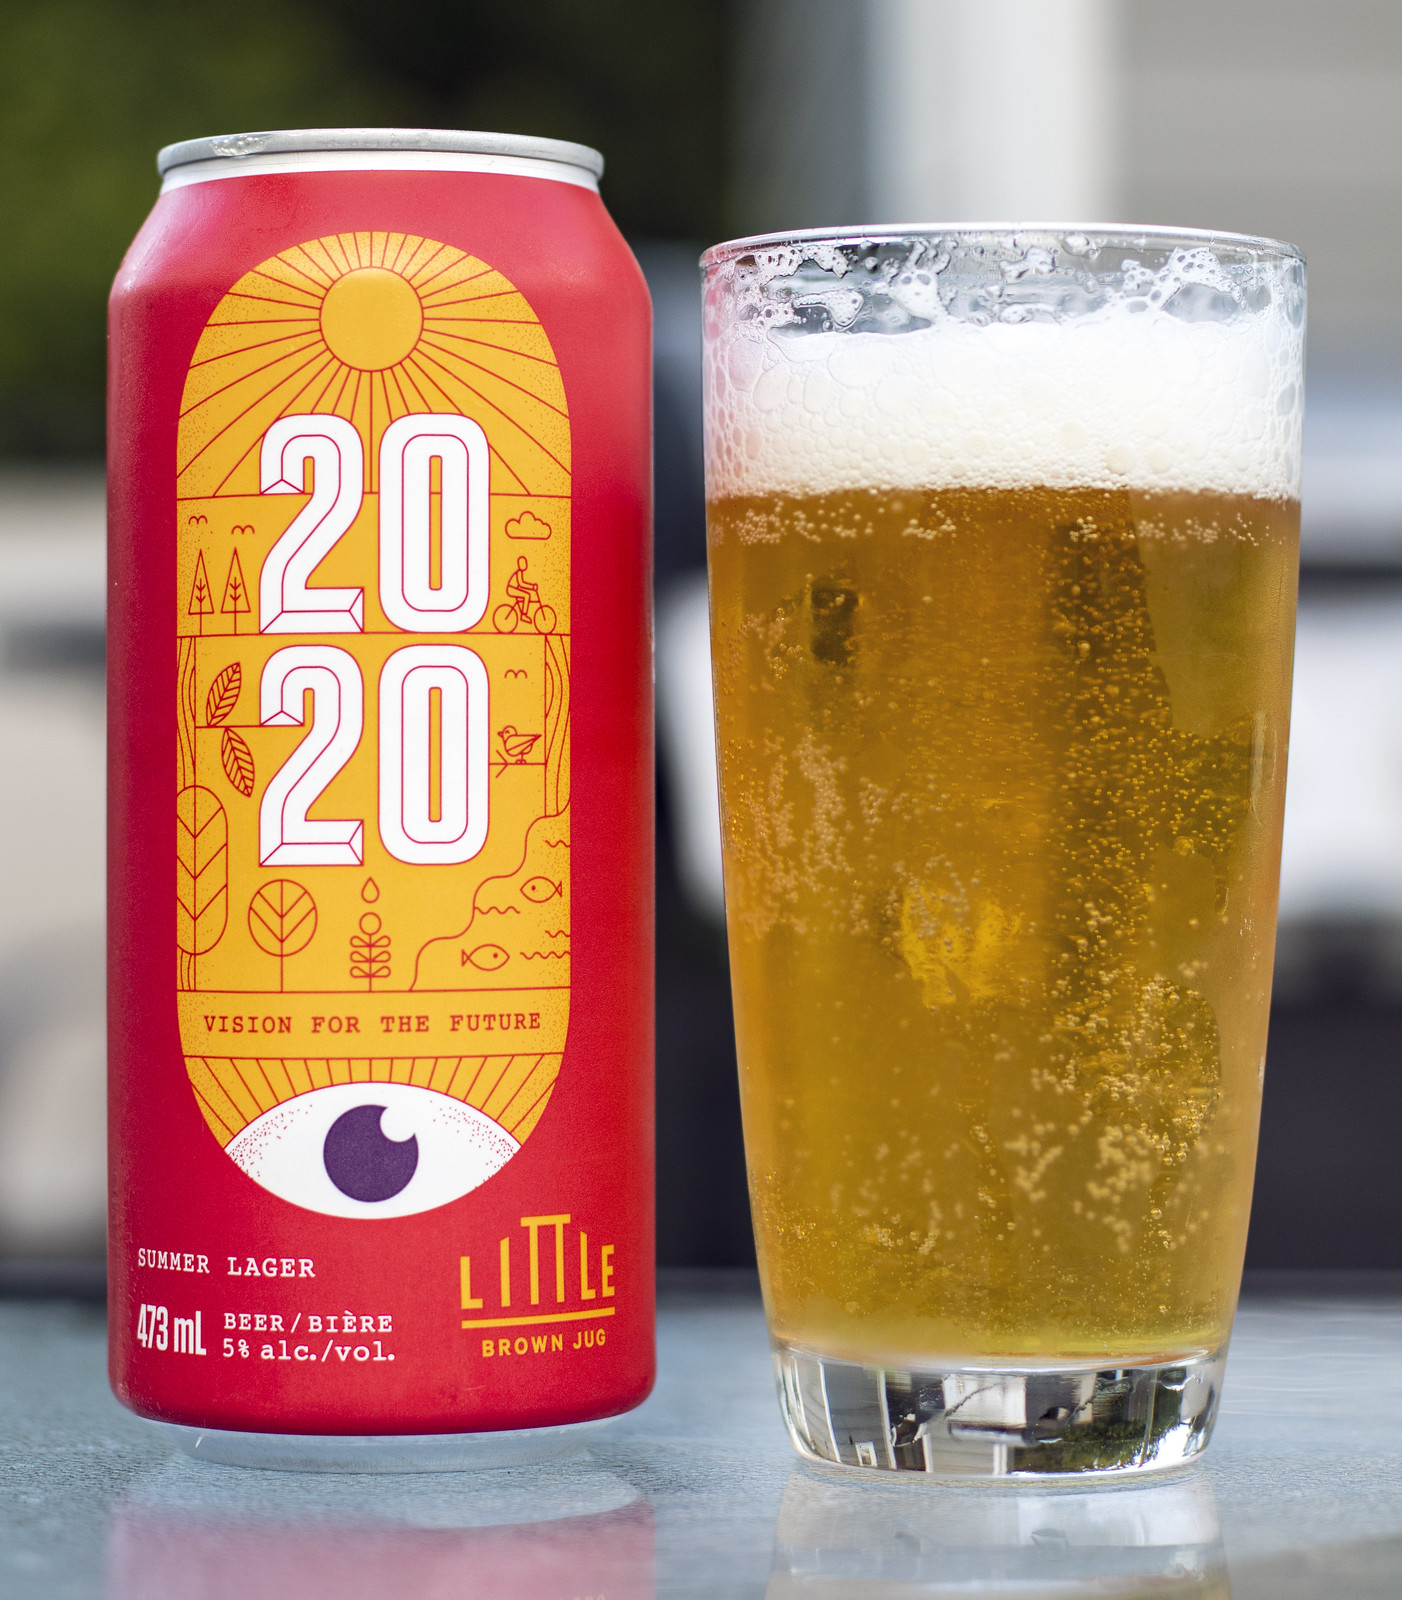 Little Brown Jug 2020 Summer Lager